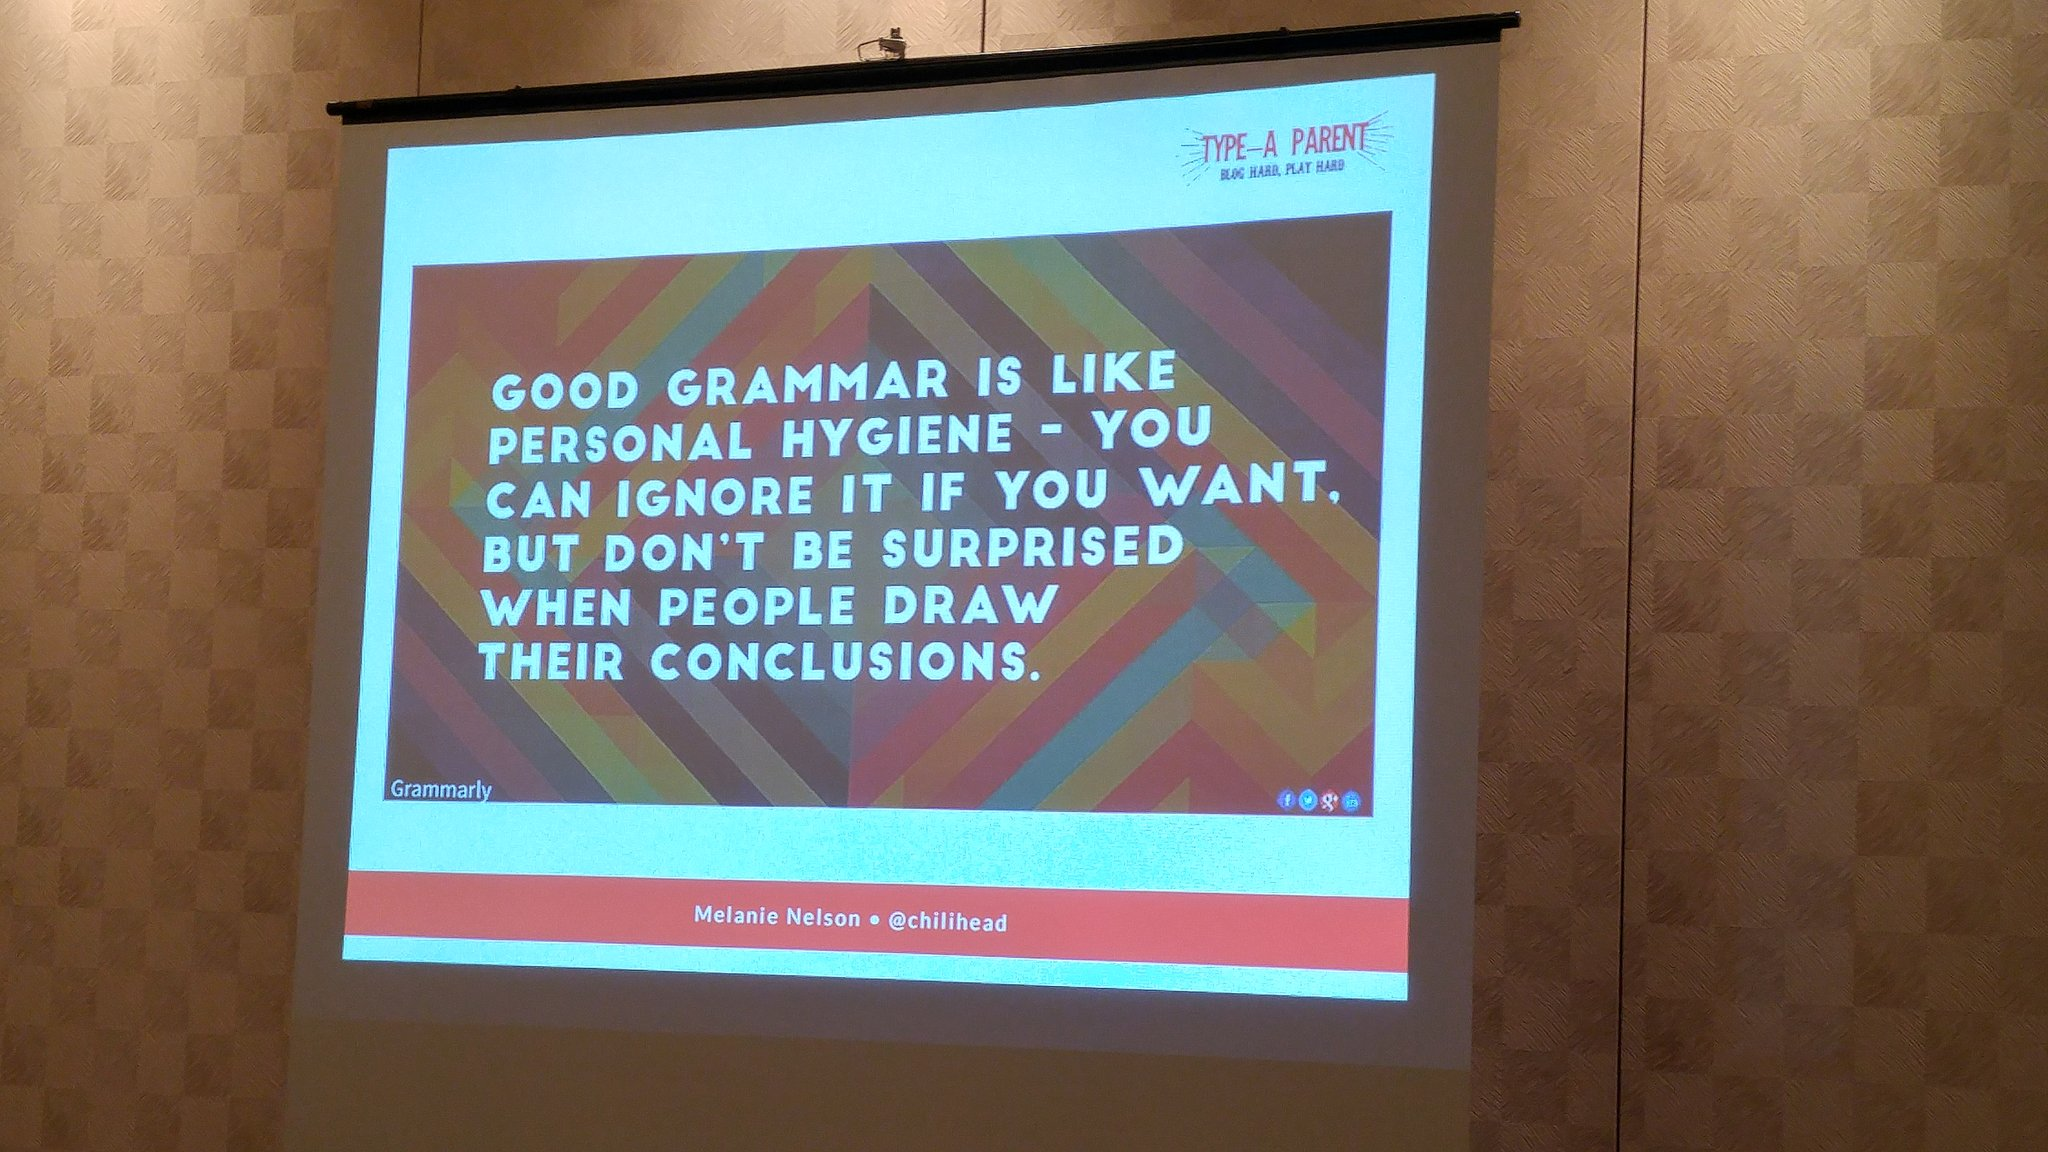 Love this slide from #typeacon talk by @chilihead #grammar is important. https://t.co/WS7HTCR5yM